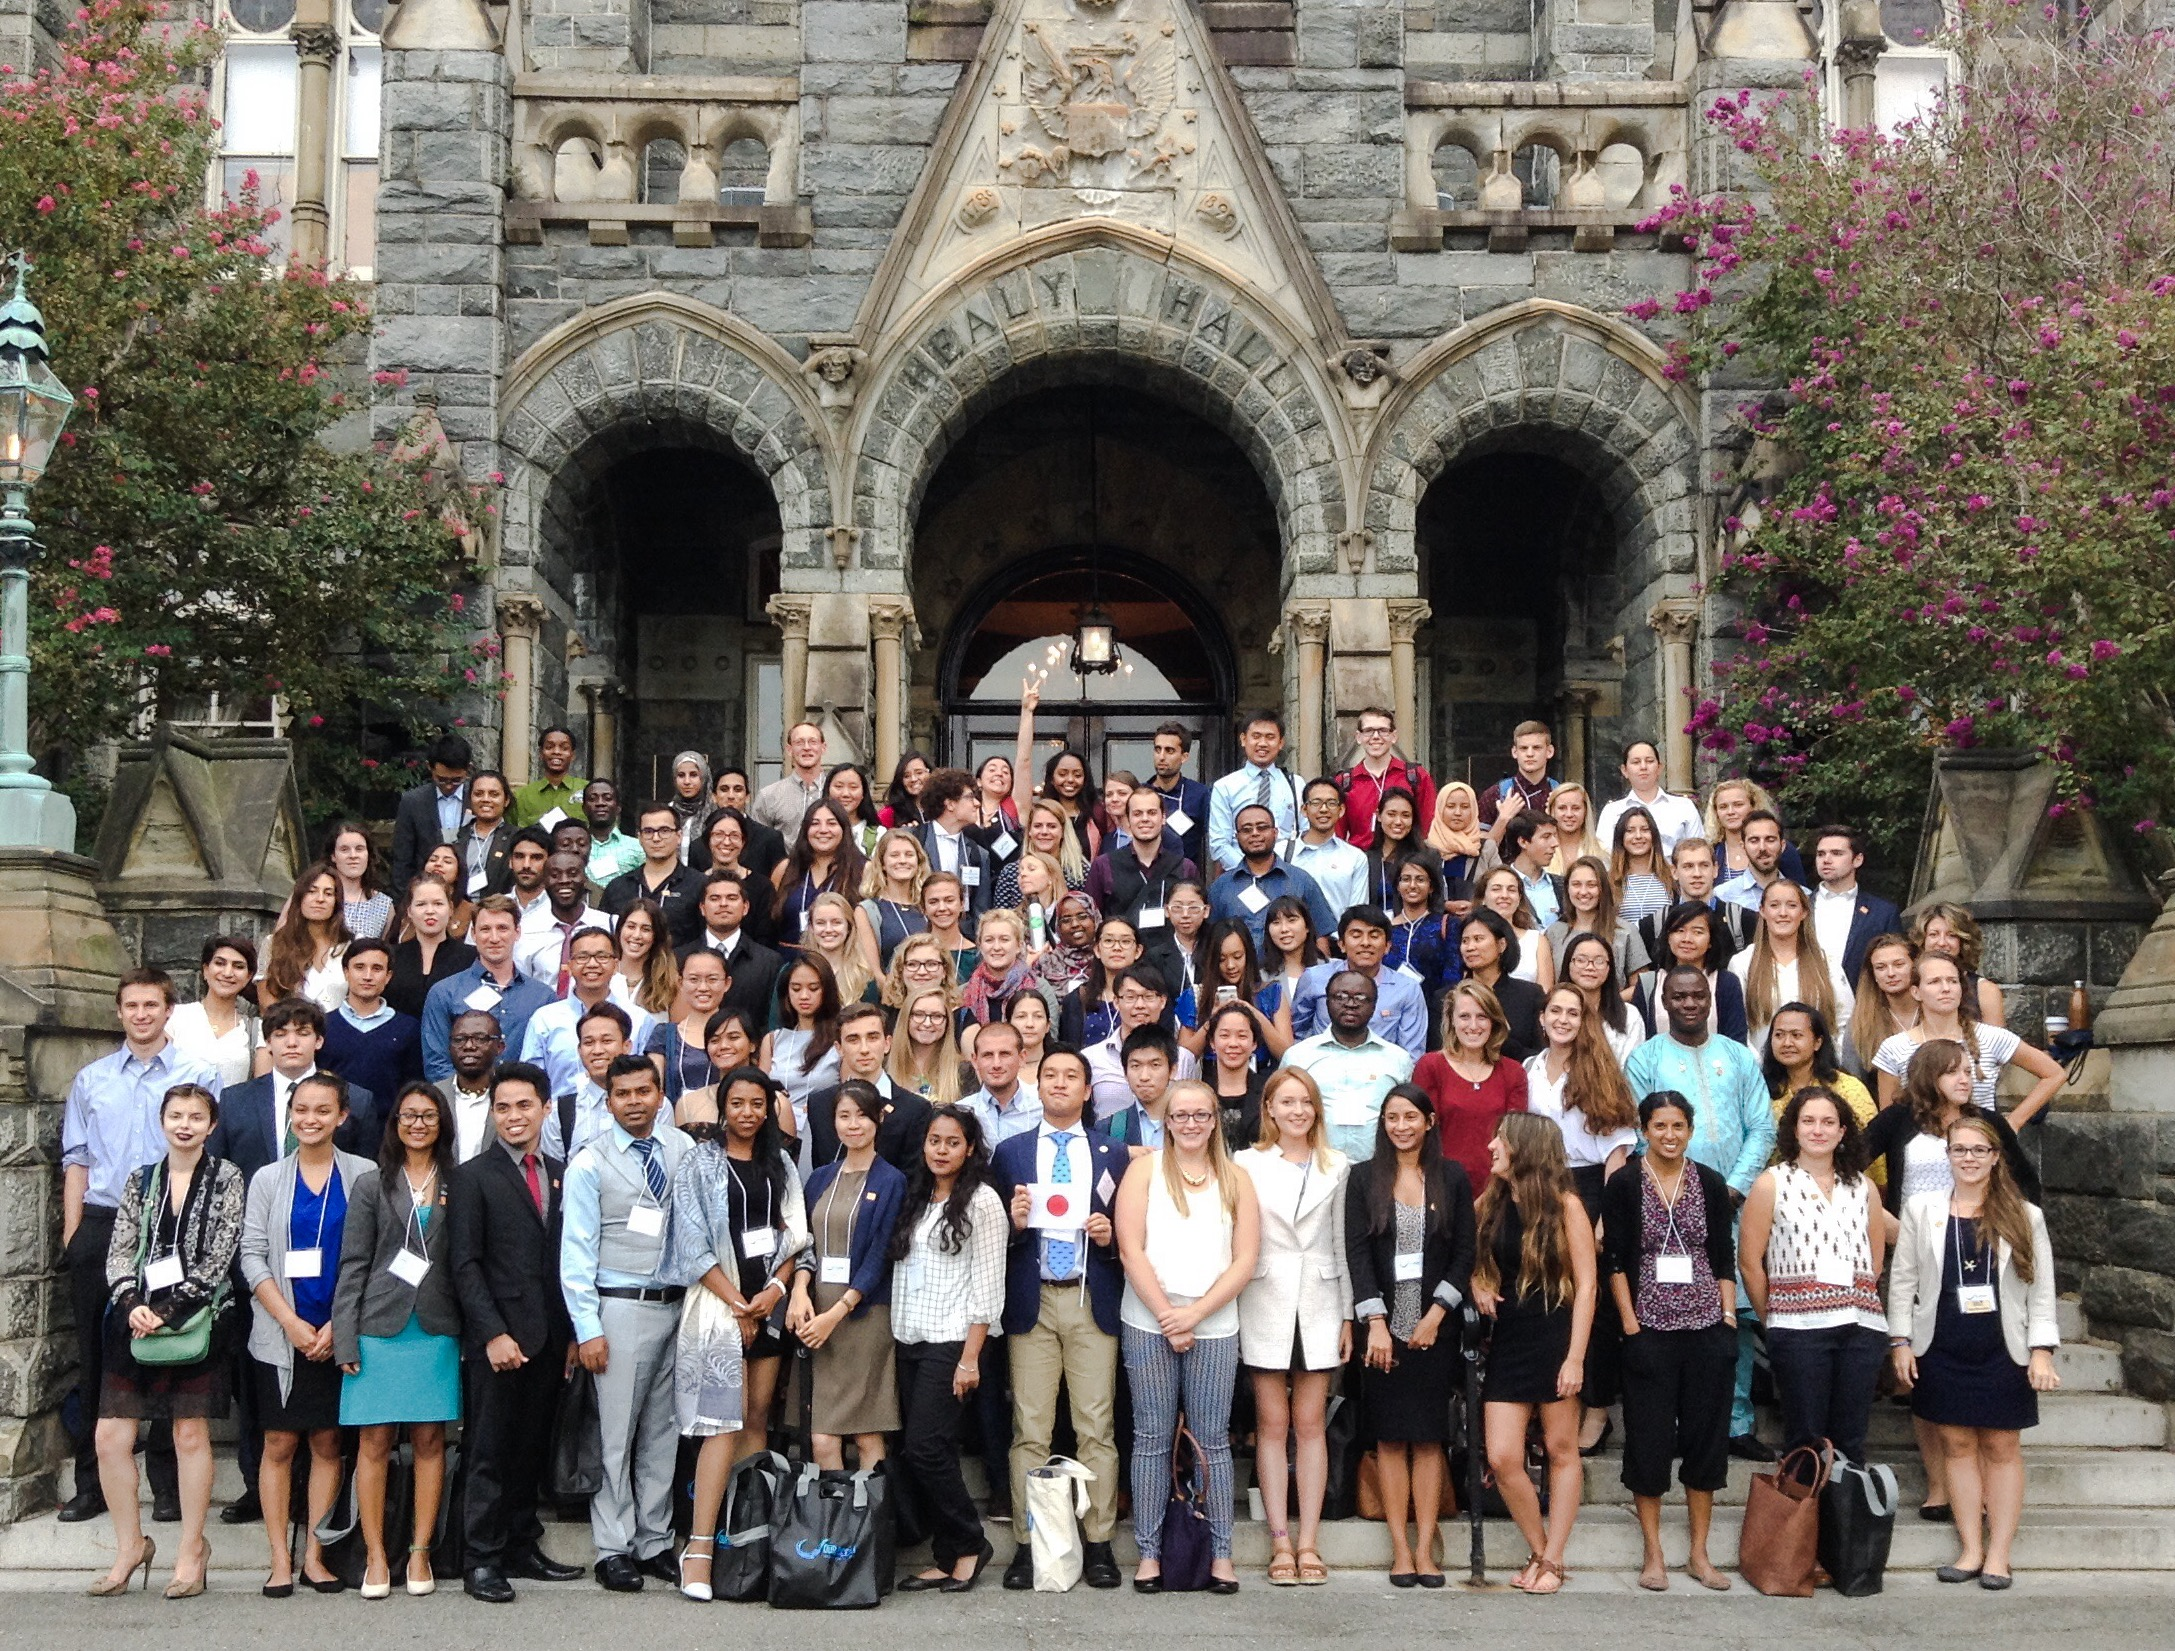 Young professionals and student participants in front of Healy Hall, Georgetown University.